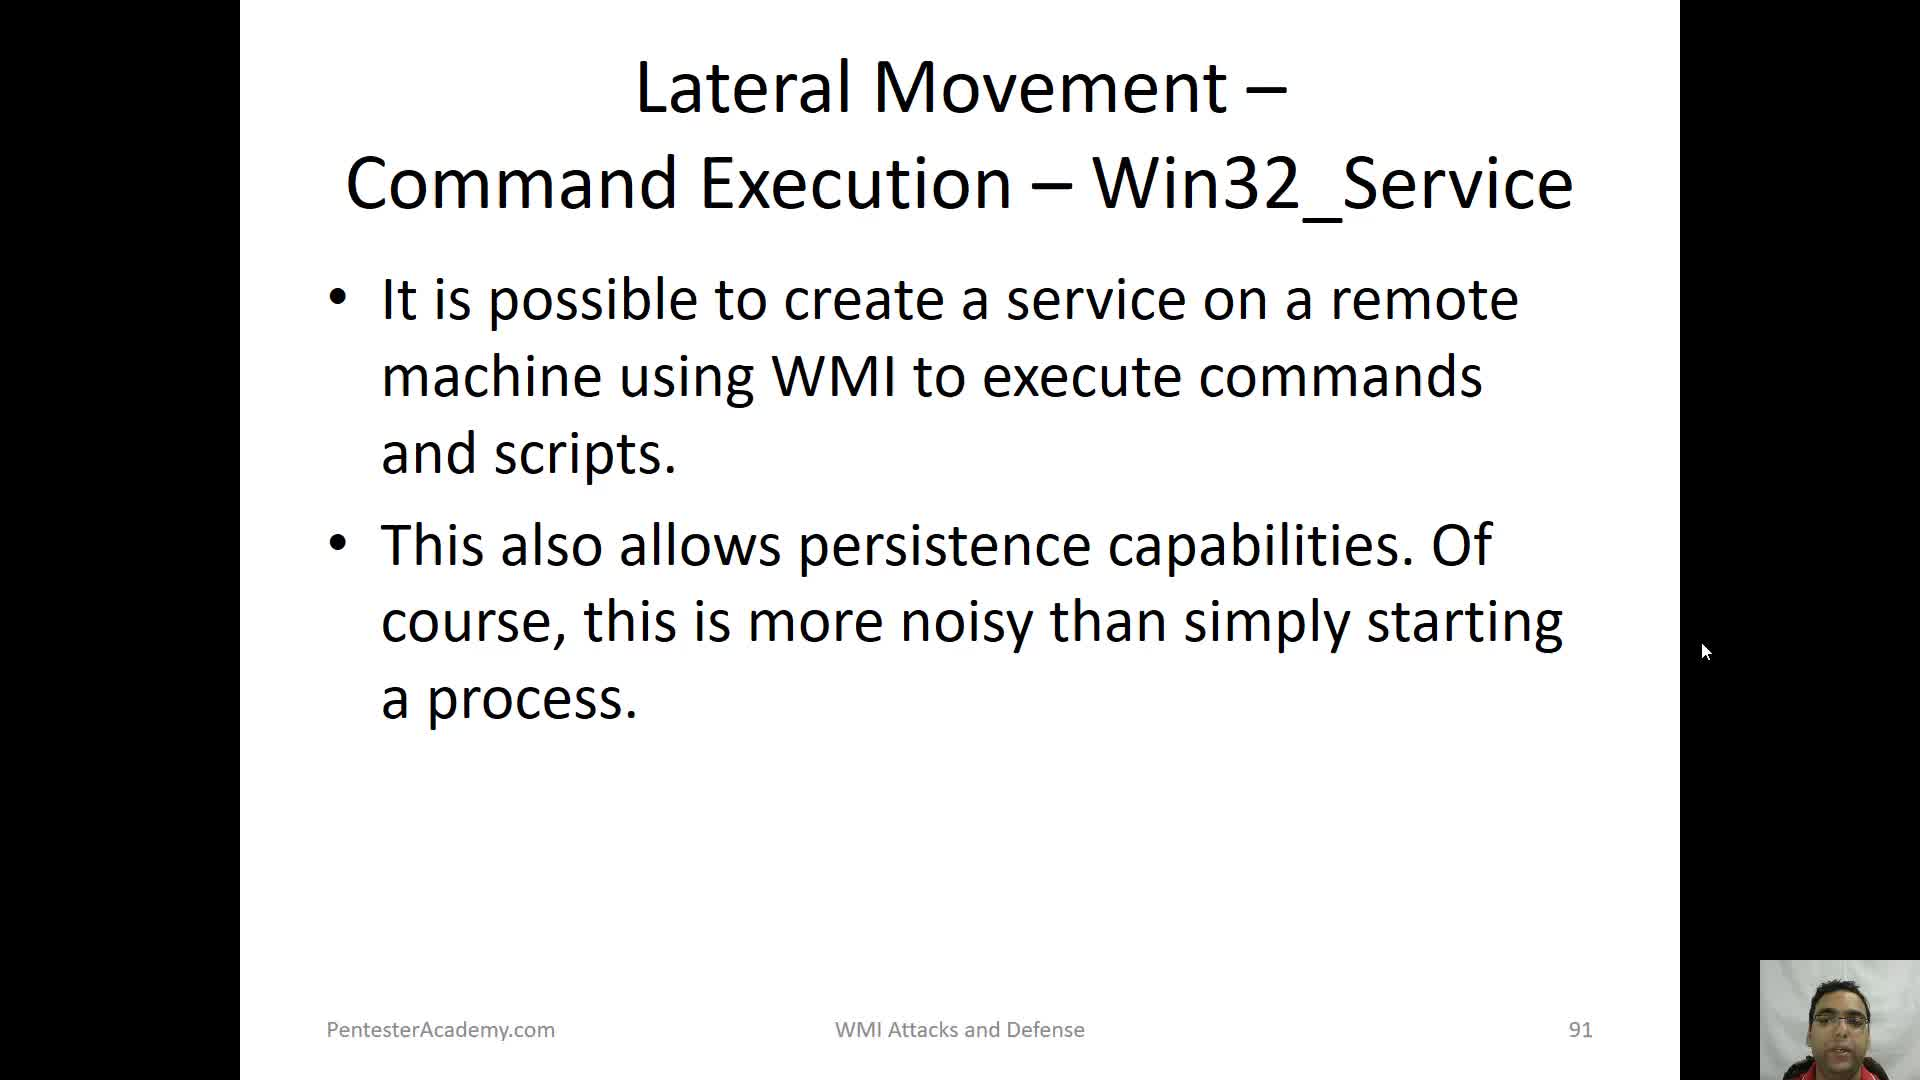 Lateral Movement - Command Execution Win32 Service